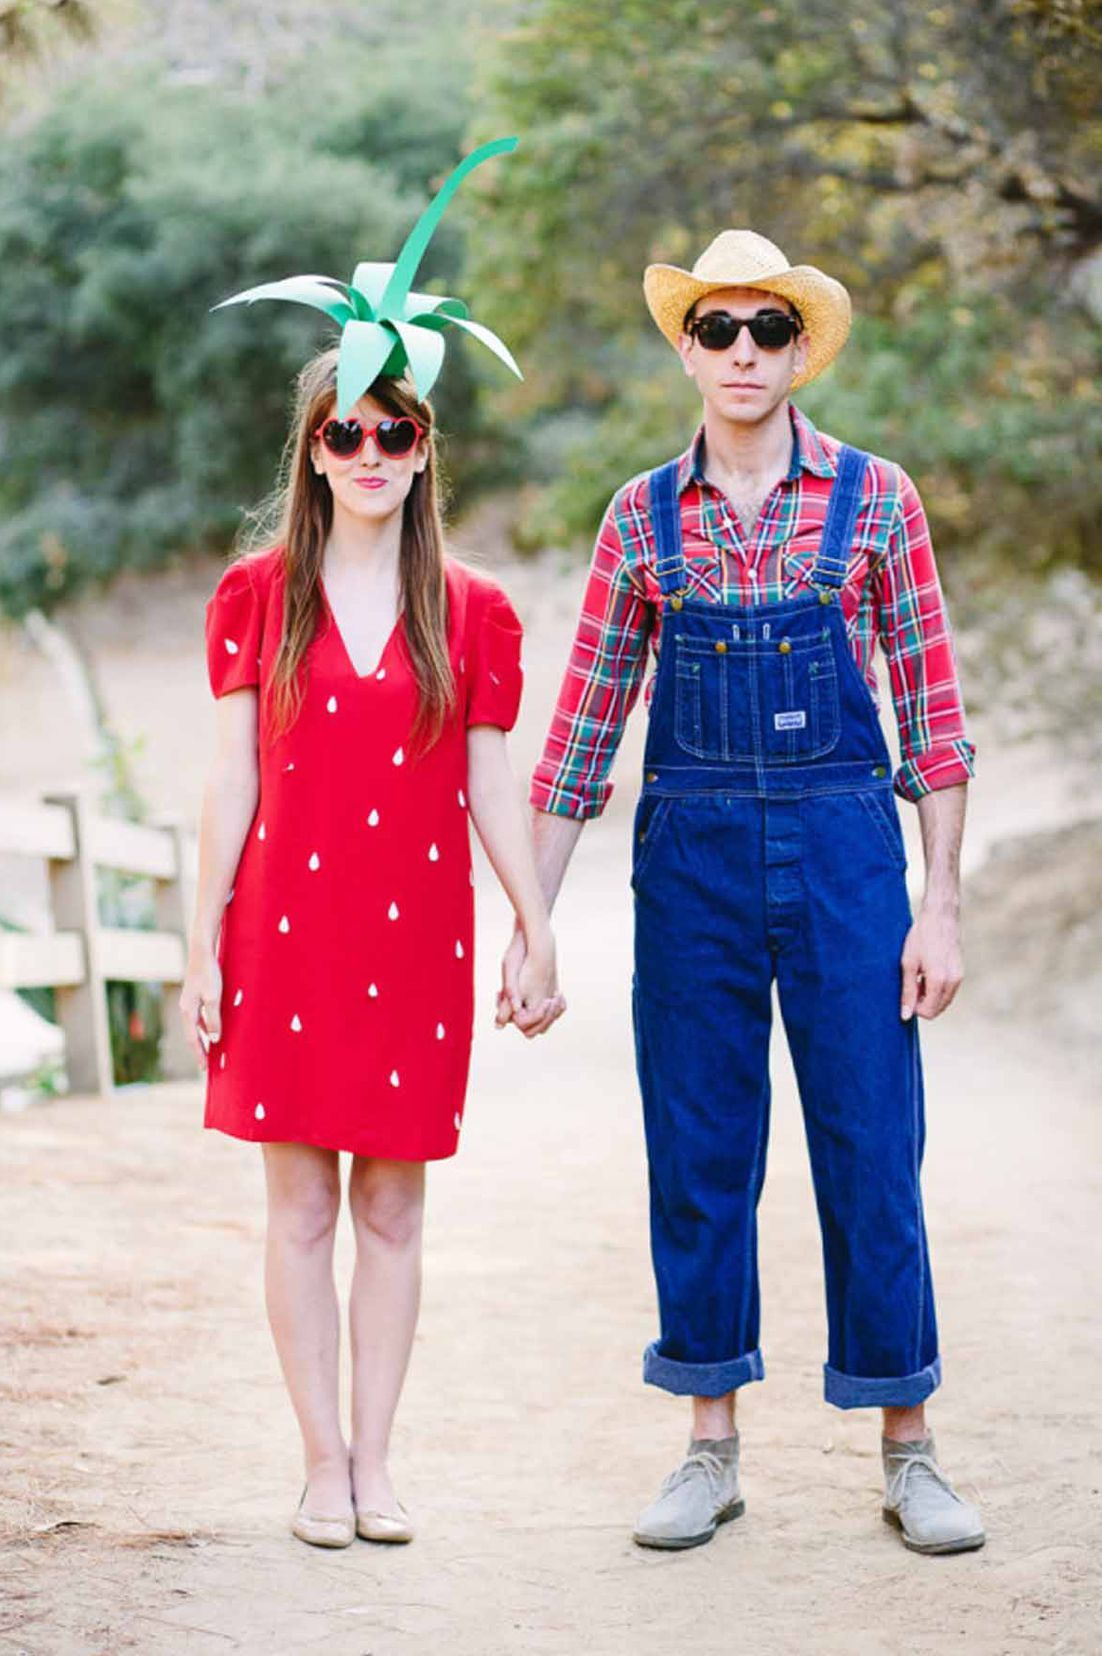 8155dfe60b84 64 Cute Couples Halloween Costumes 2018 - Best Ideas for Duo Costumes